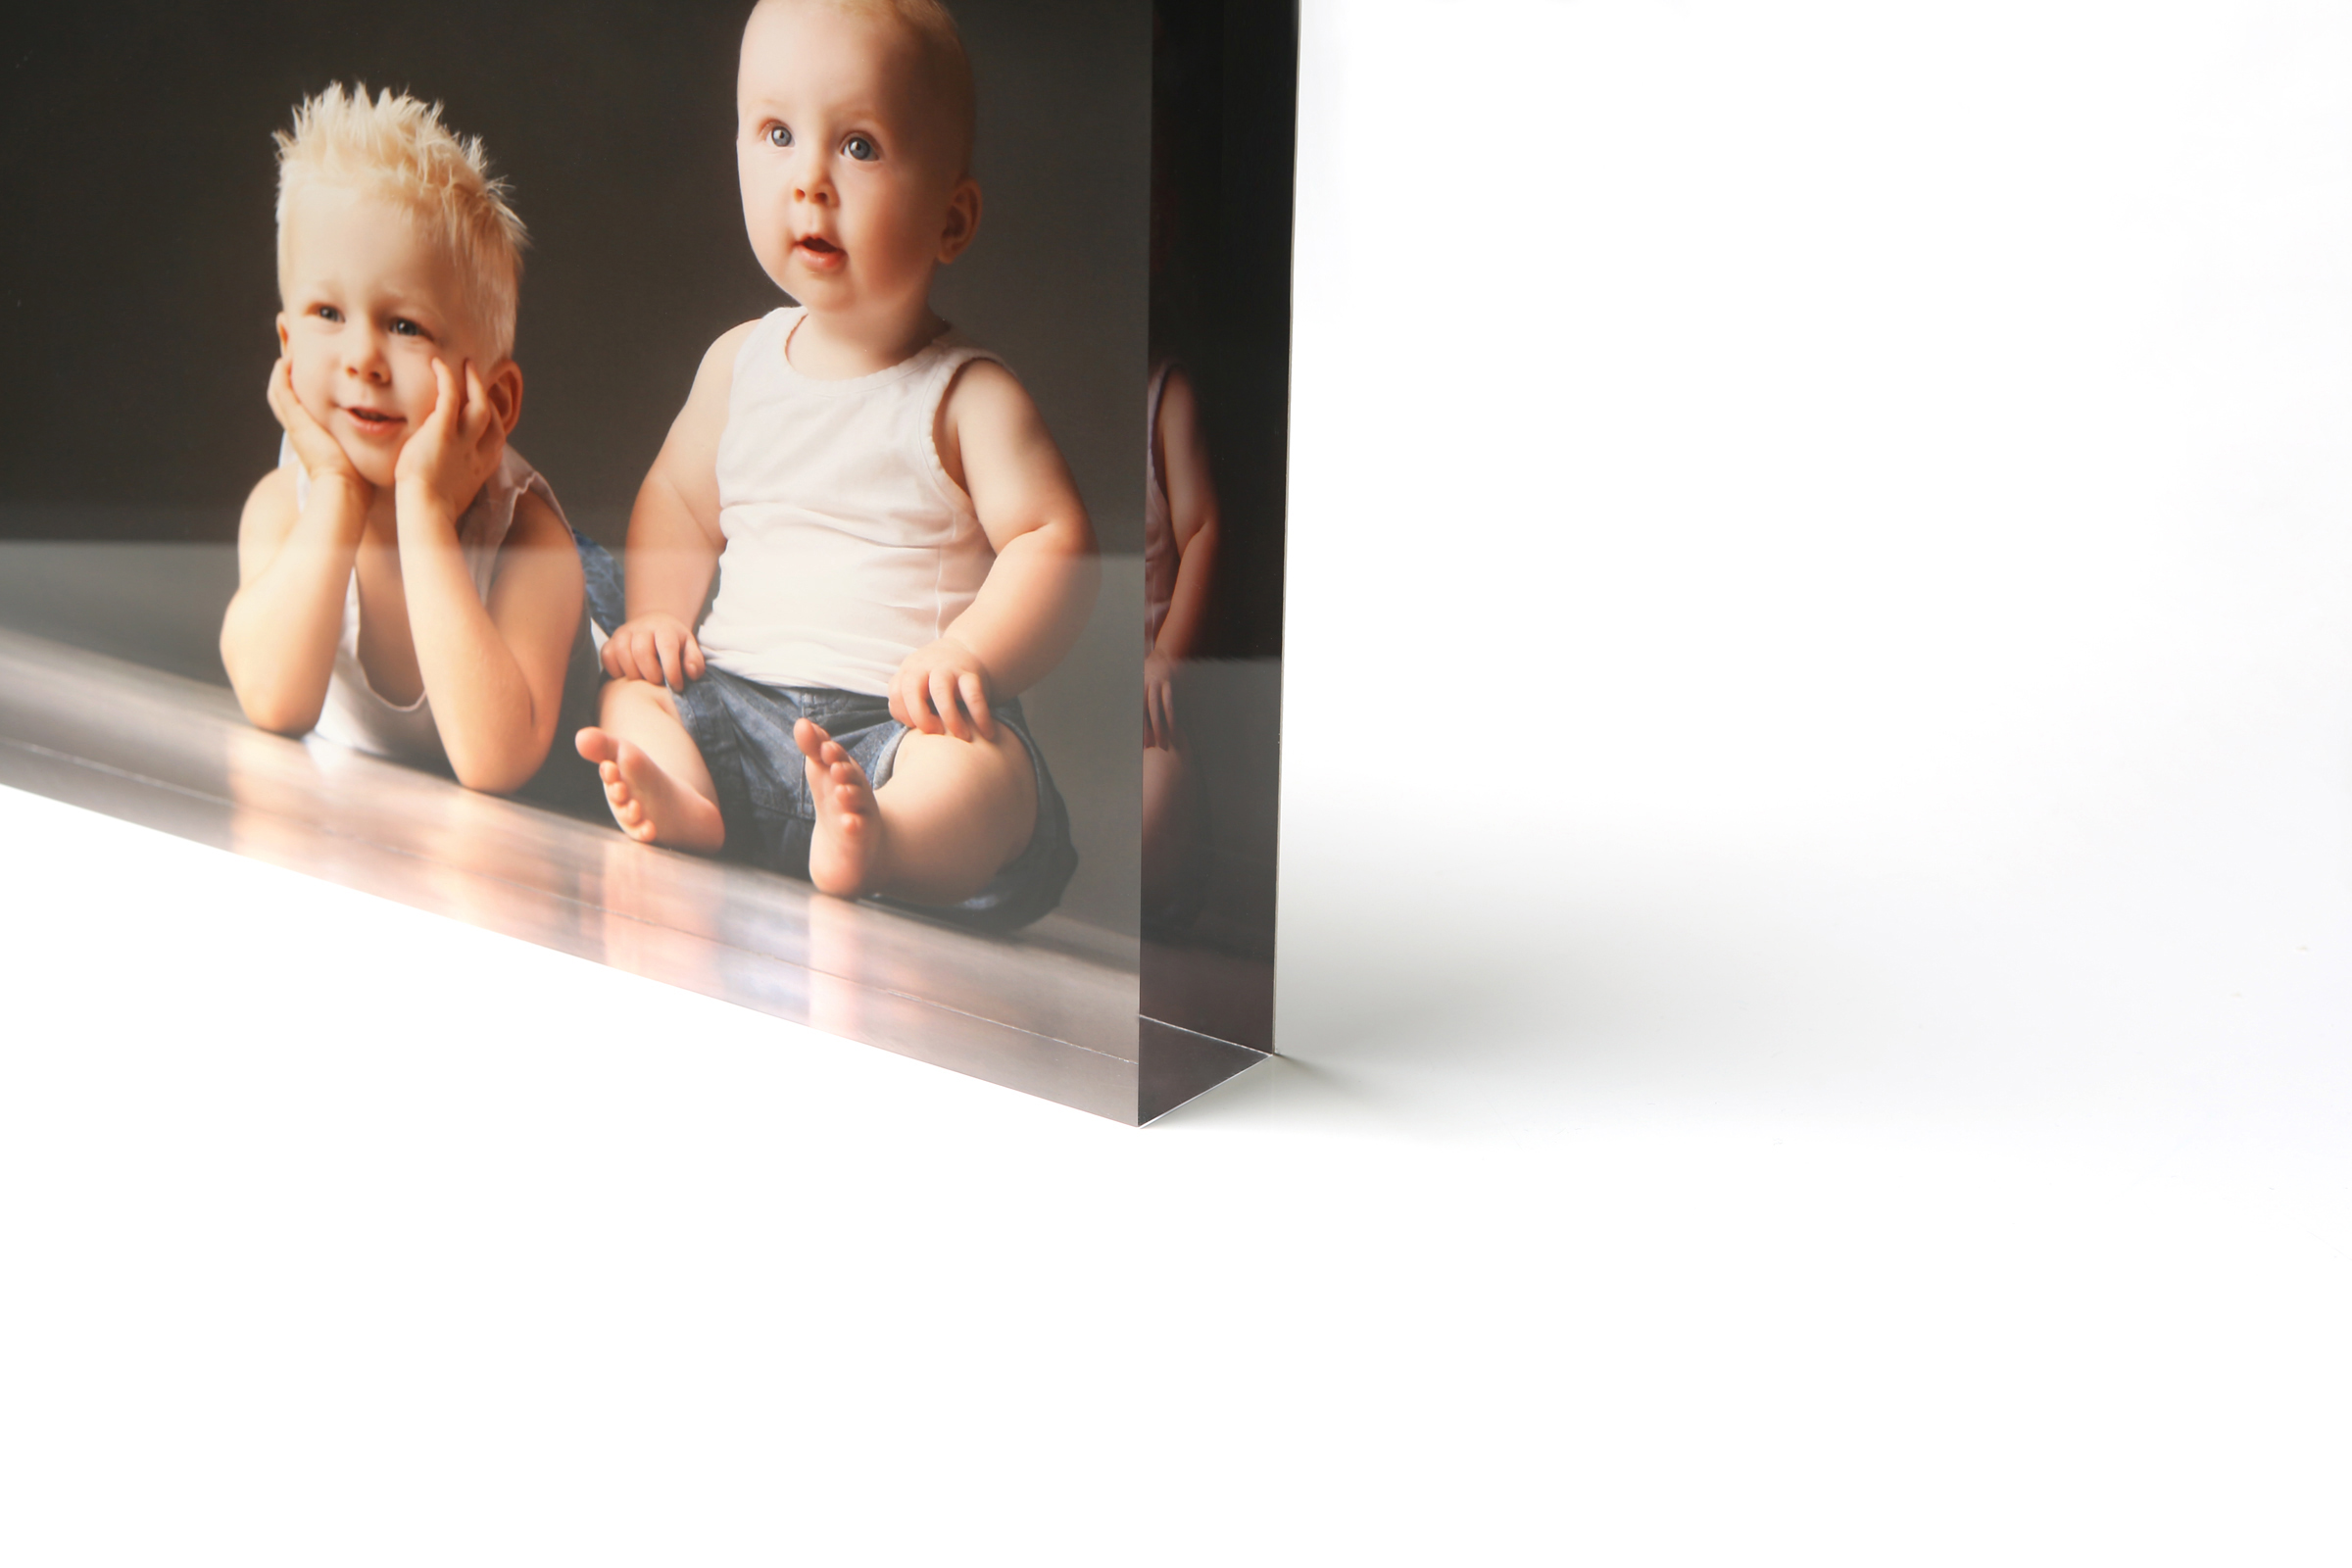 Products - We offer a range of premium photographic finishes including custom framing, wall acrylics, block acrylics & albums. Any photo ordered in one of these finishes also includes the digital file of that image, printable to the size ordered. Click here for more information on our product range.We also have a selection of brand new Digital File Packages which include a set number of high-resolution digital files, starting from $599.You can also order unframed prints, however these do not include any digital copies.